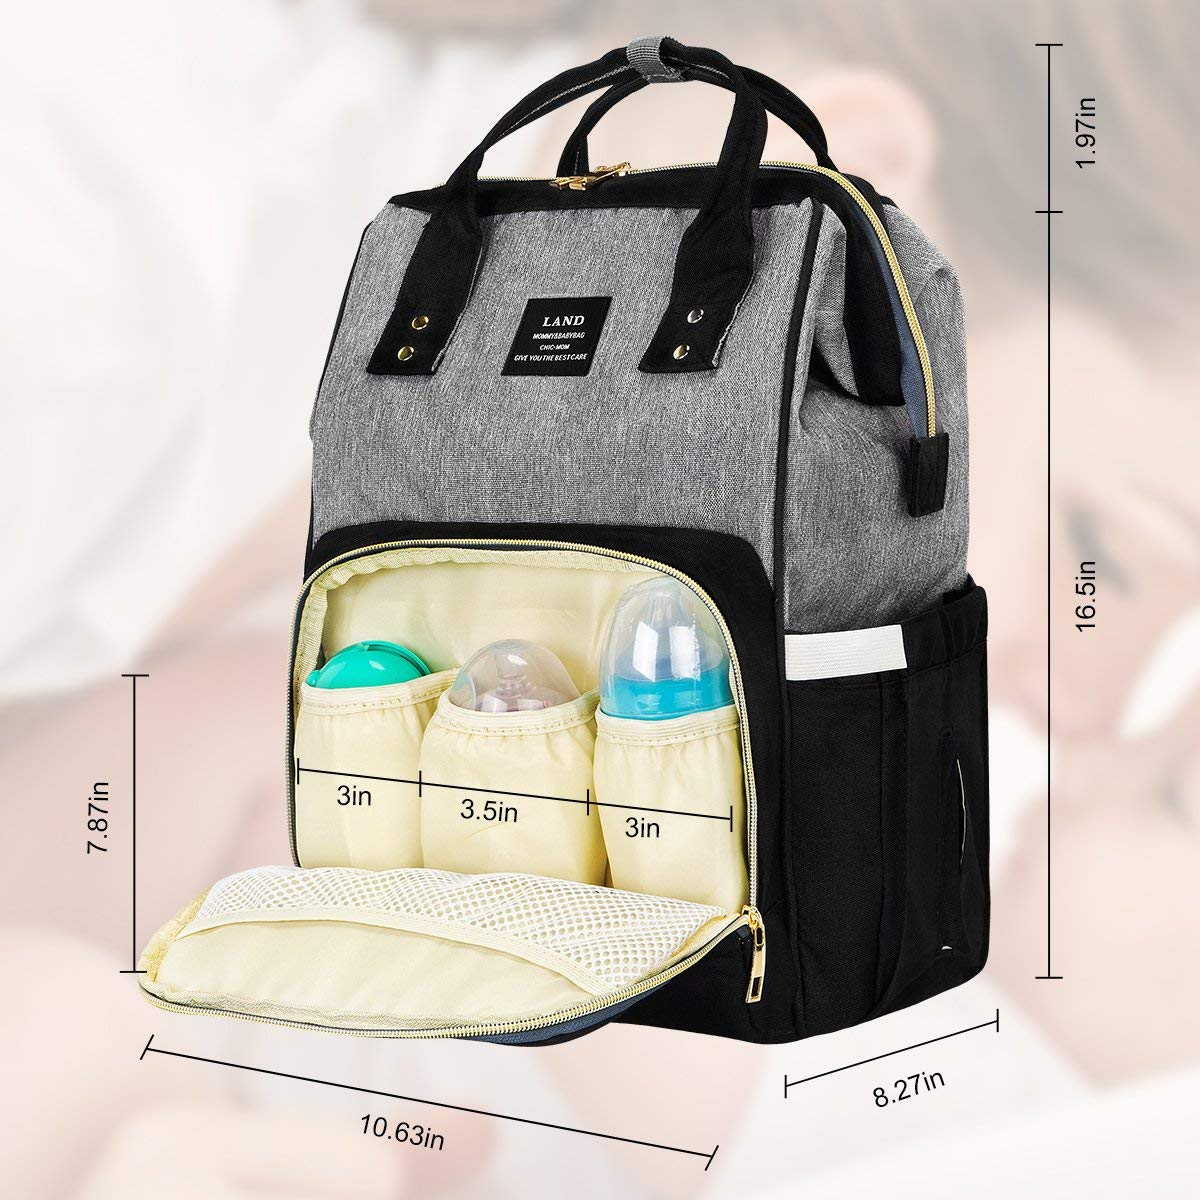 Landuo Diaper Bag Multi-Function Waterproof Travel Backpack Large Nappy Bags for Baby Care, Large Capacity, Stylish and Unisex (Grey-Black)